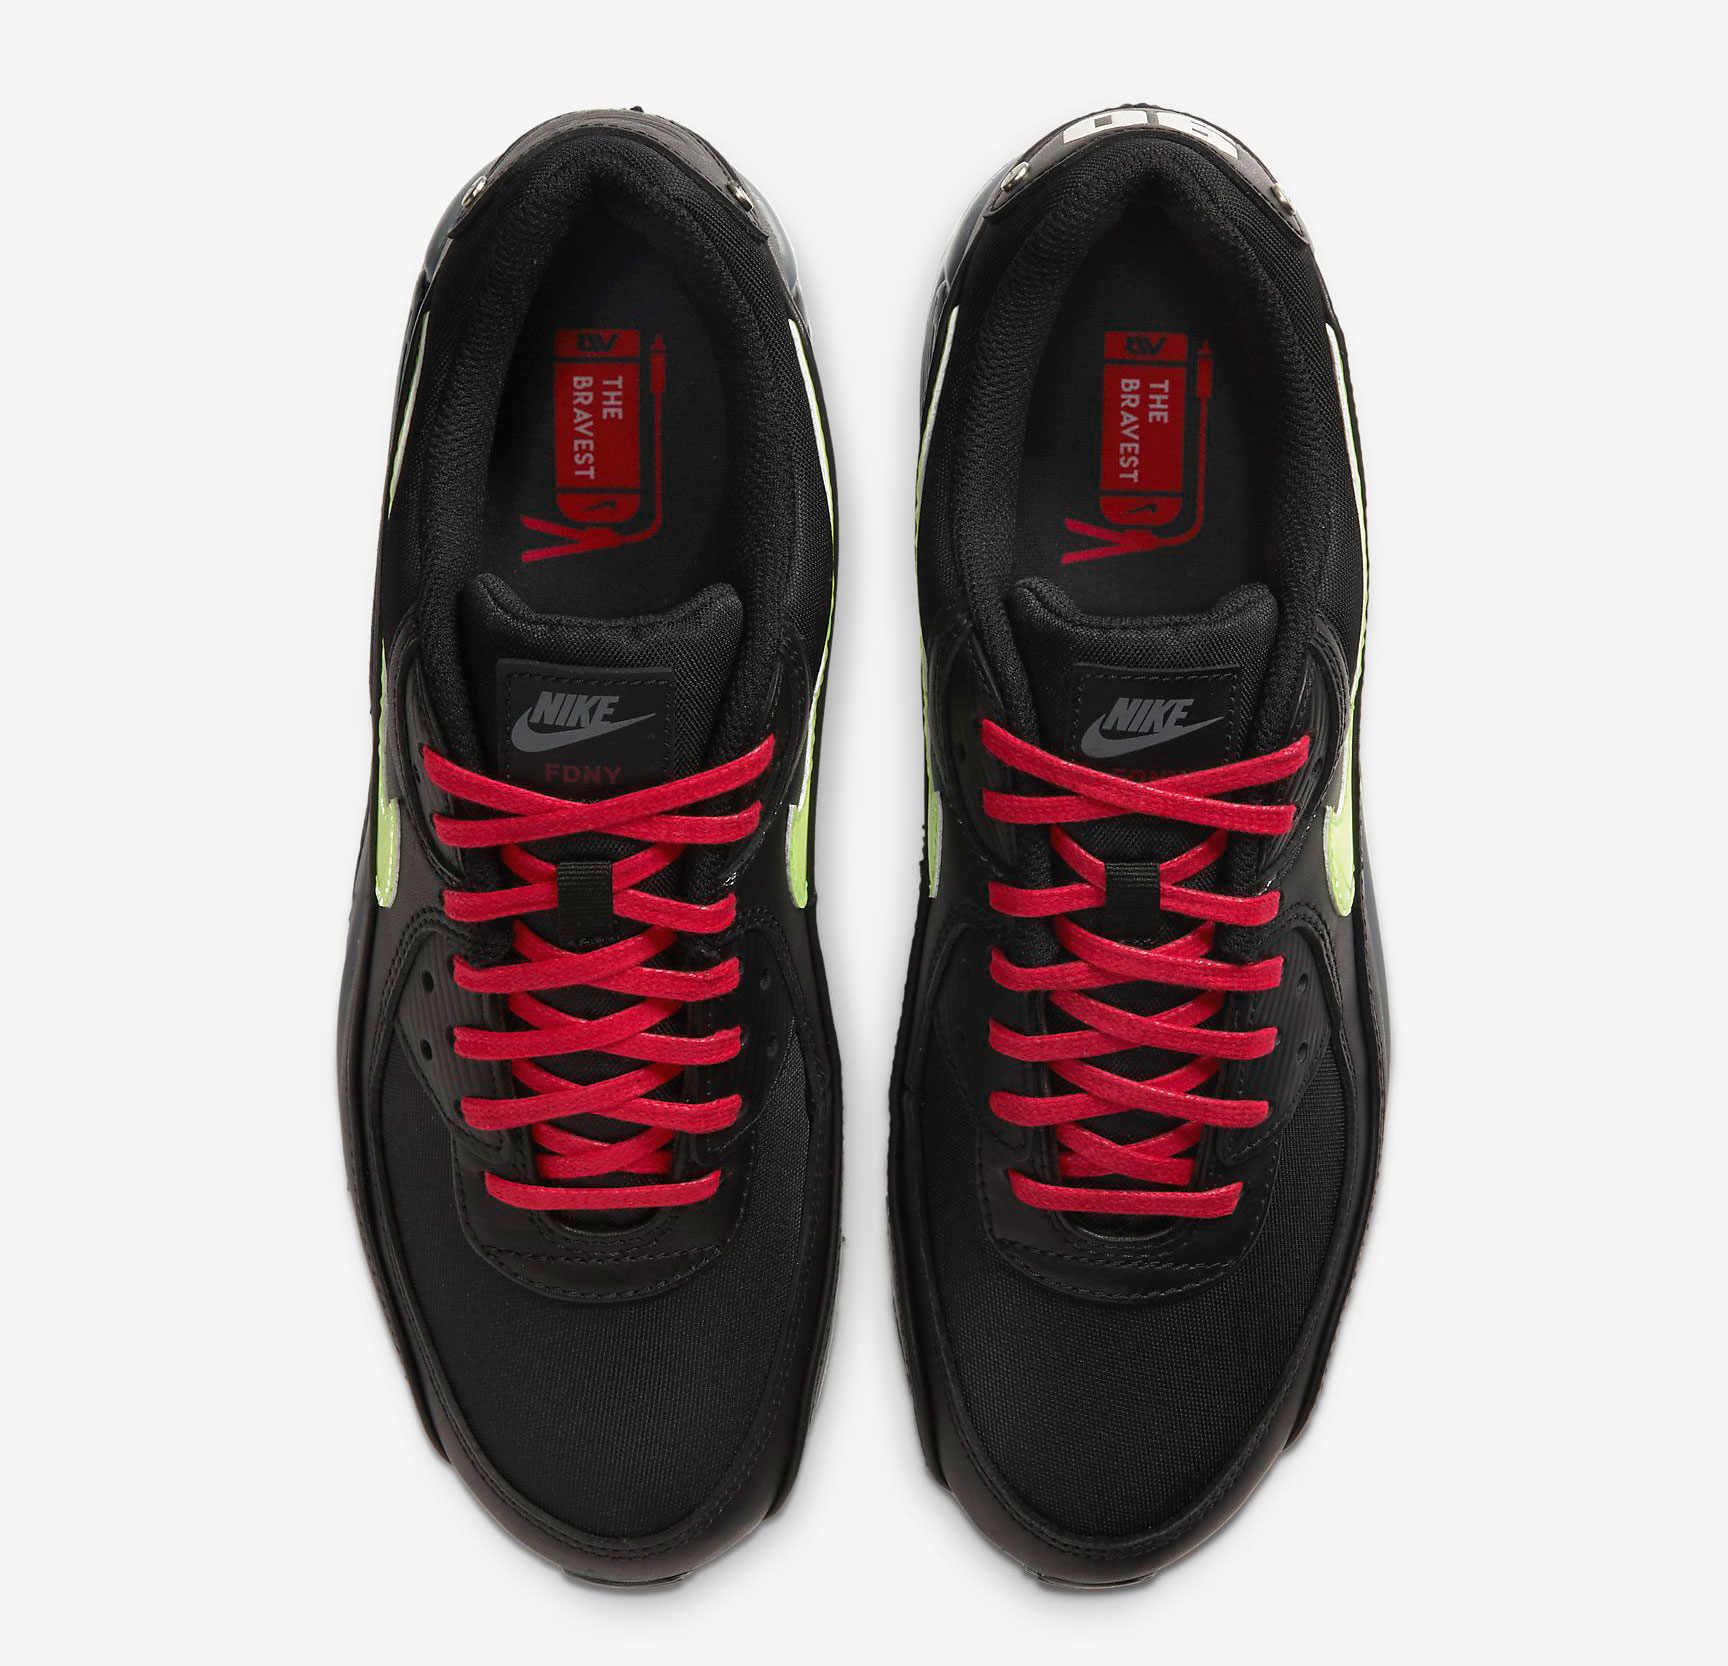 nike-air-max-90-fdny-release-date-4